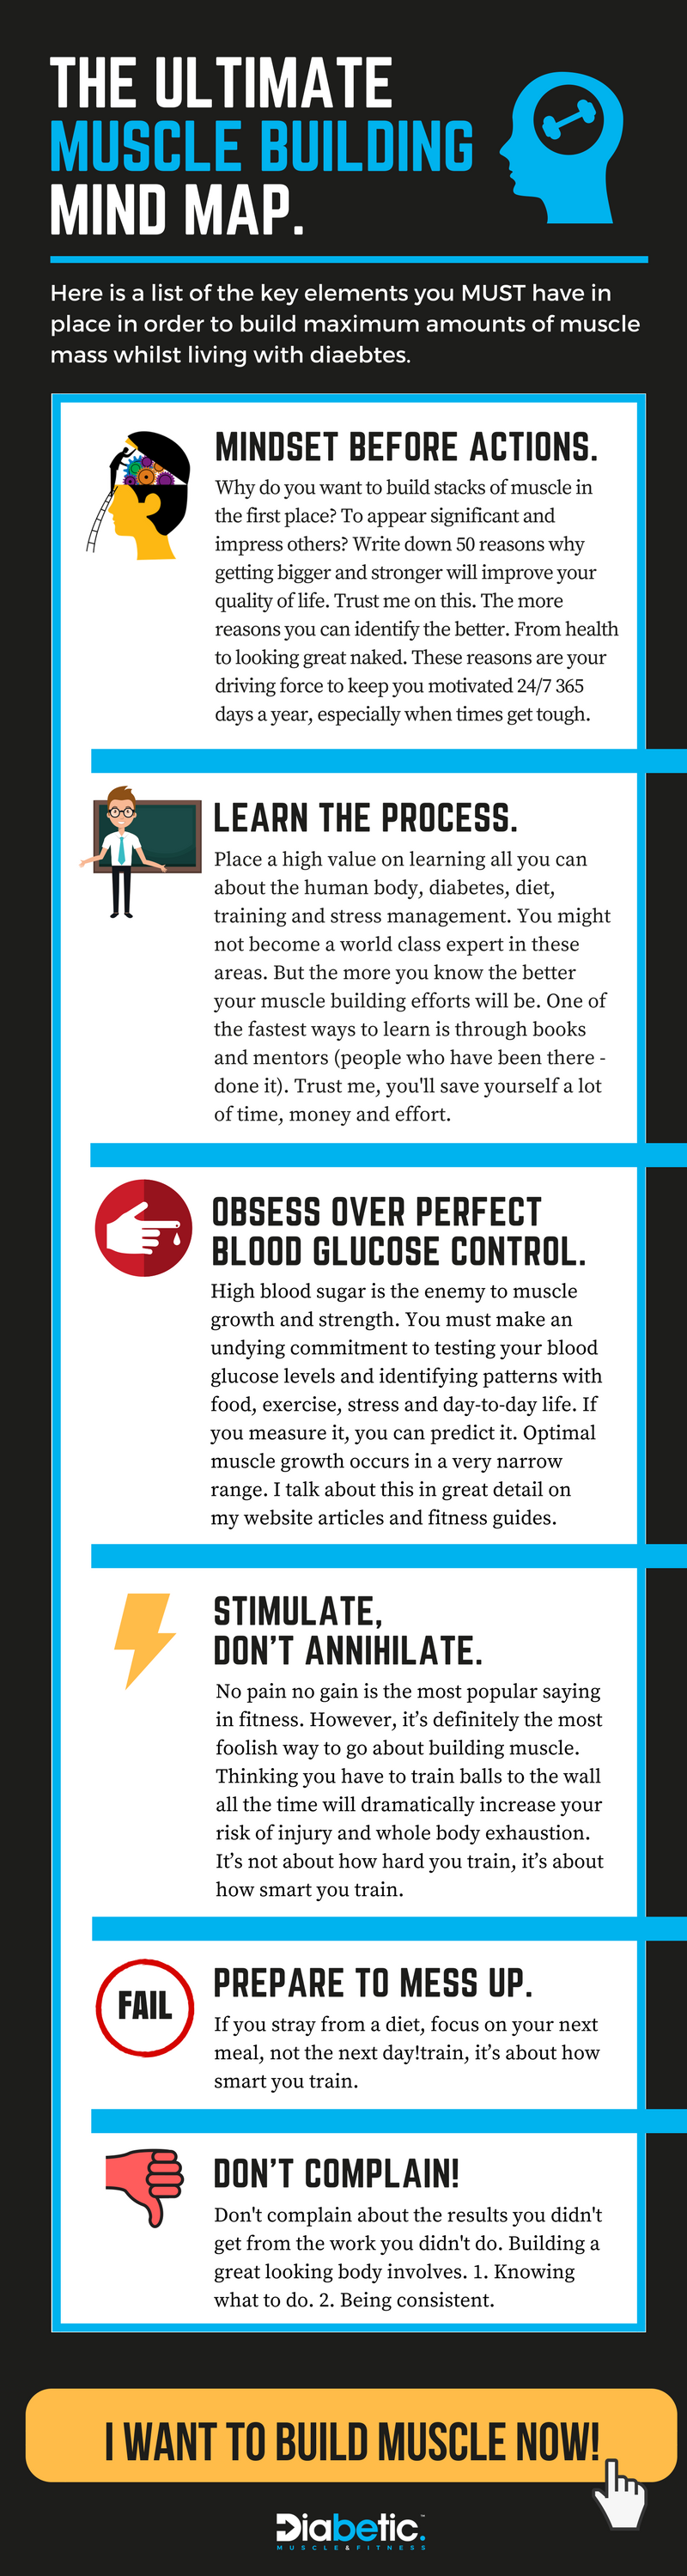 The Muscle Building Mind Map for Diabetes